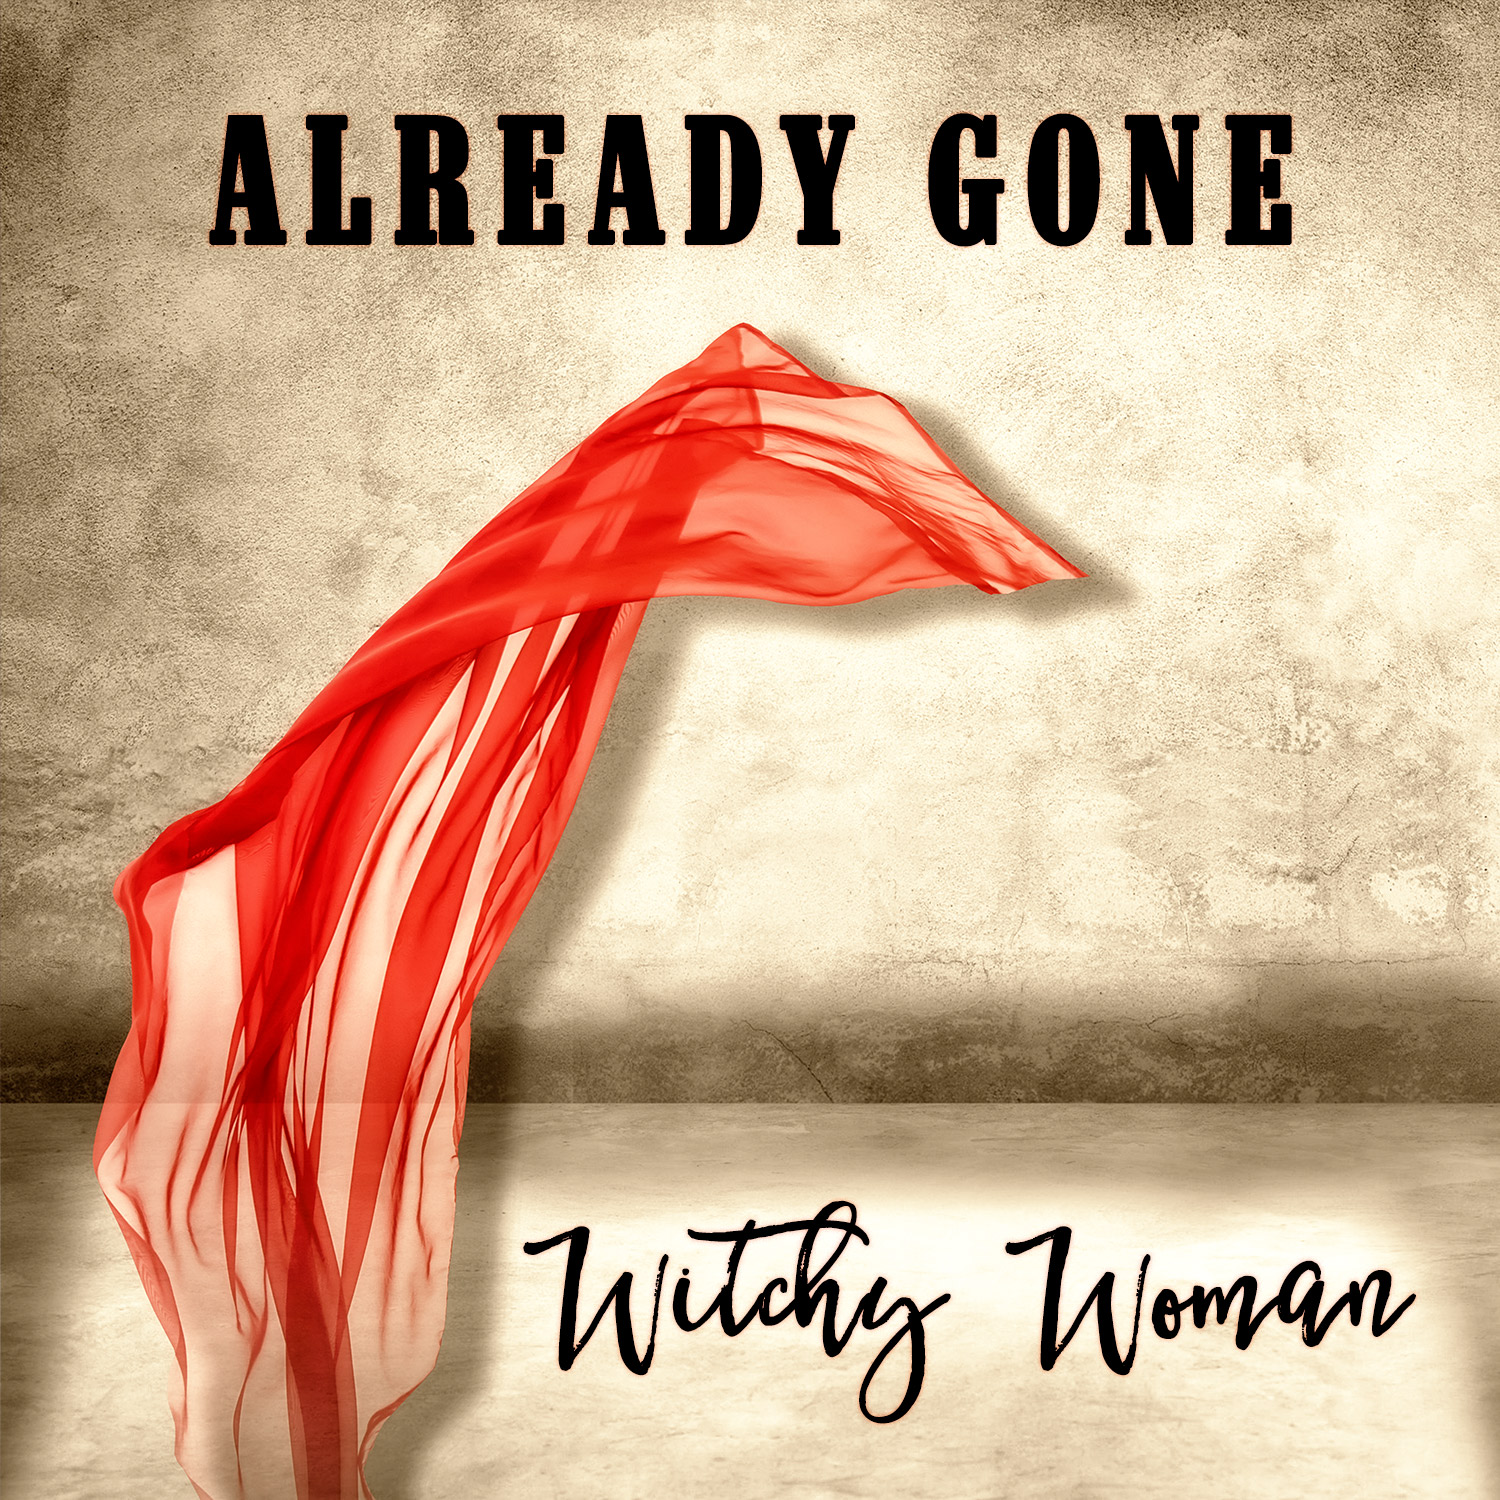 Witchy Woman - Like You've Never Heard It!